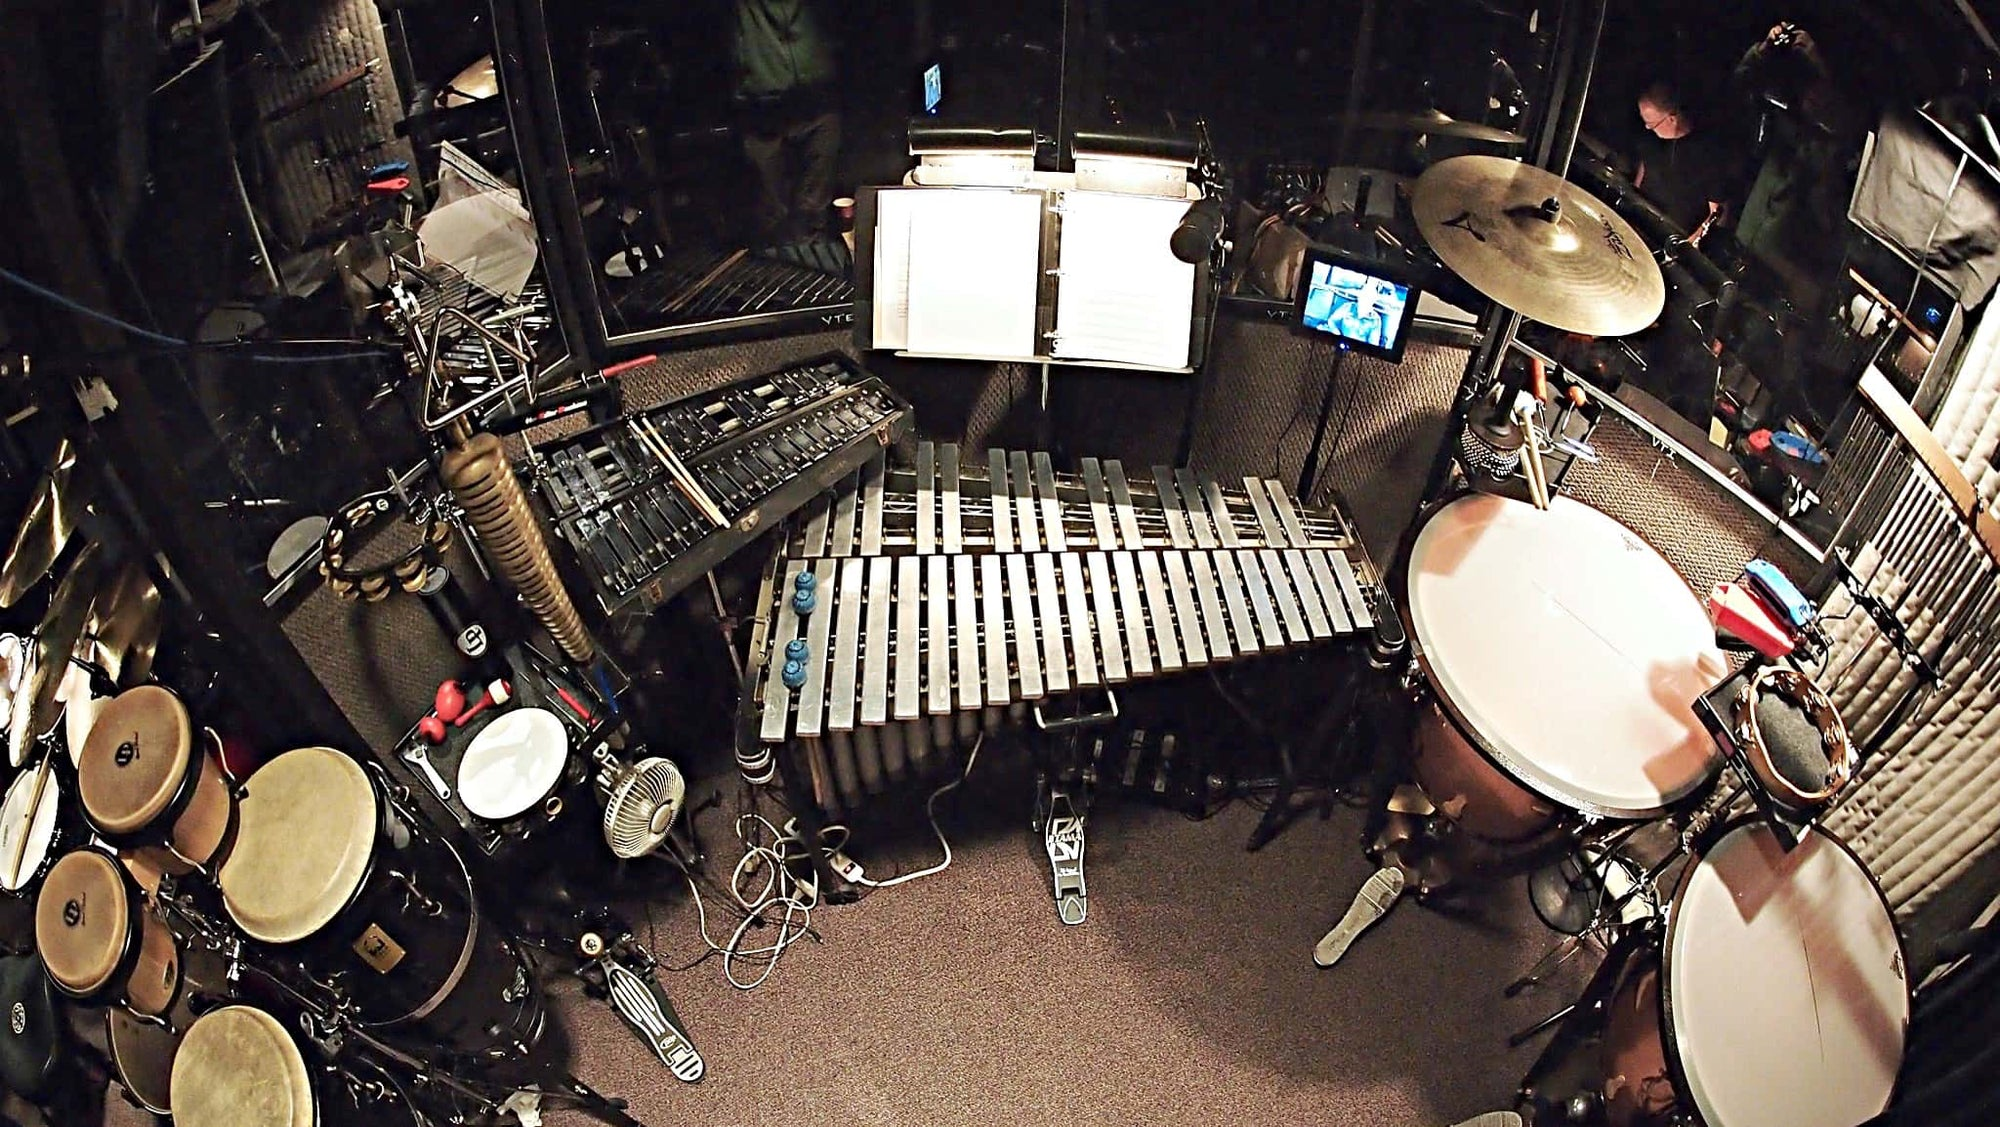 Alec Wilmart's percussion setup for Dreamgirls at the Village Theater in Seattle, Washington.